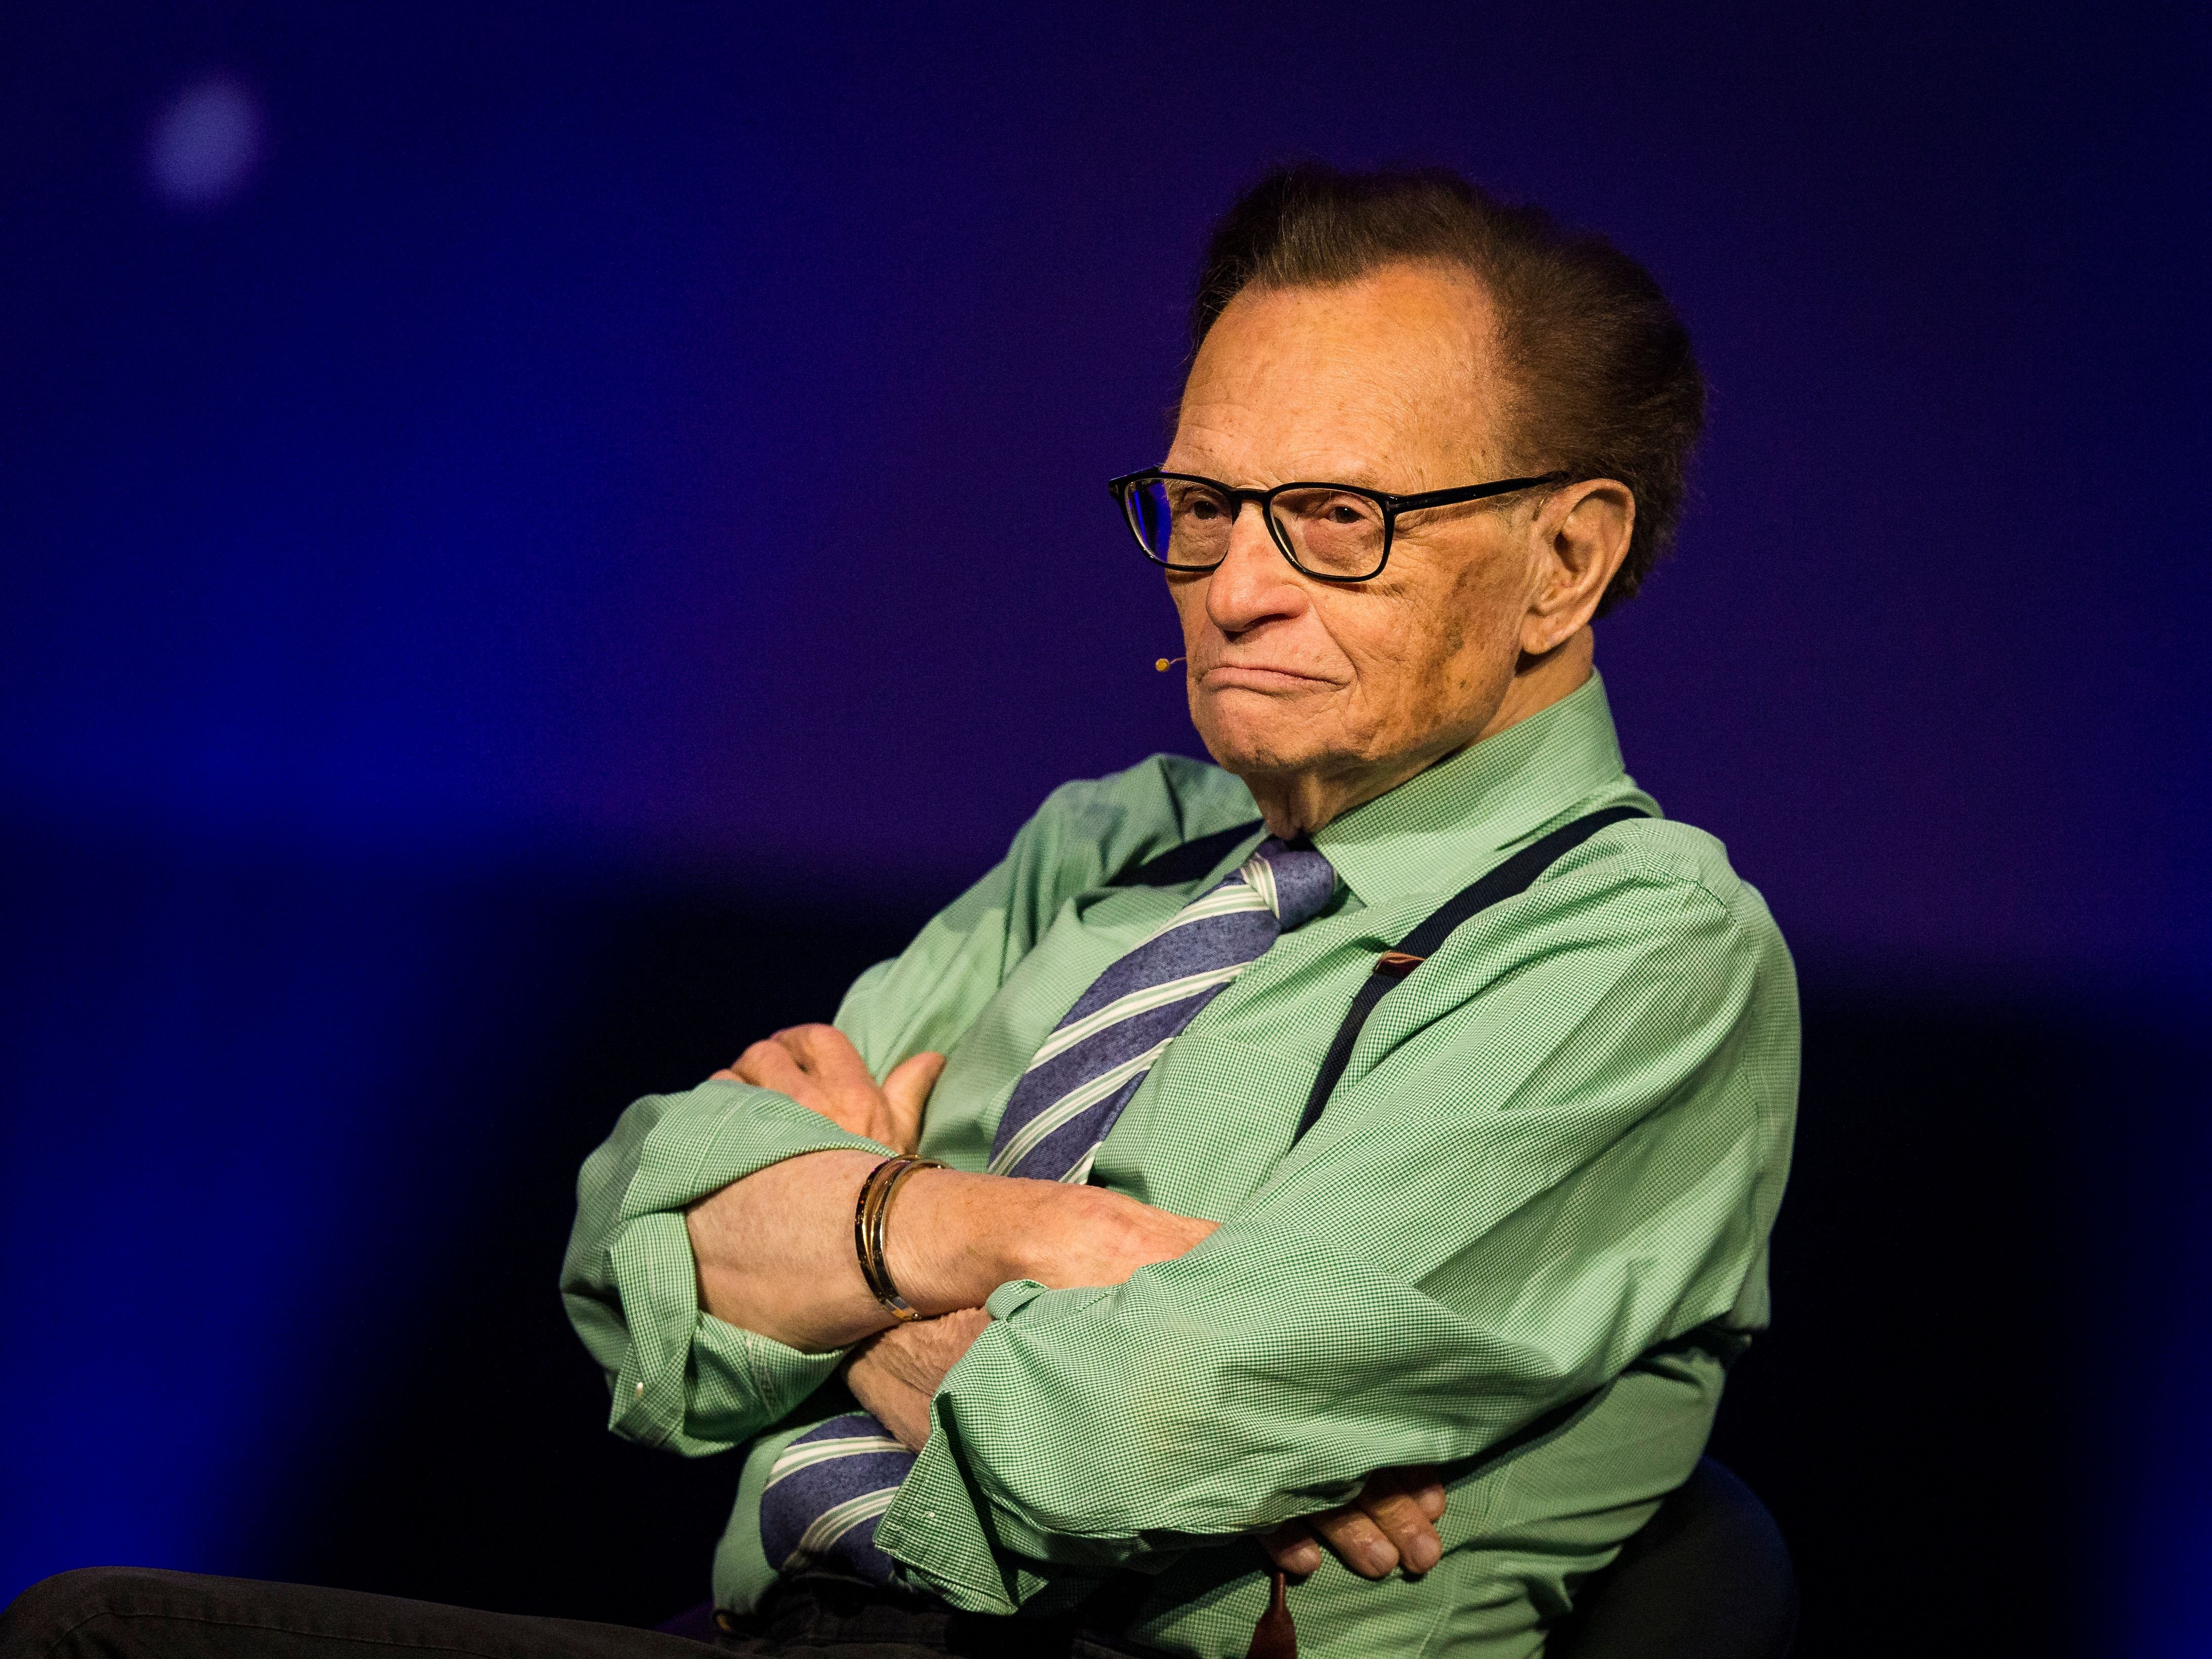 Larry King at the Starmus Festival on June 21, 2017 | Photo: Getty Images